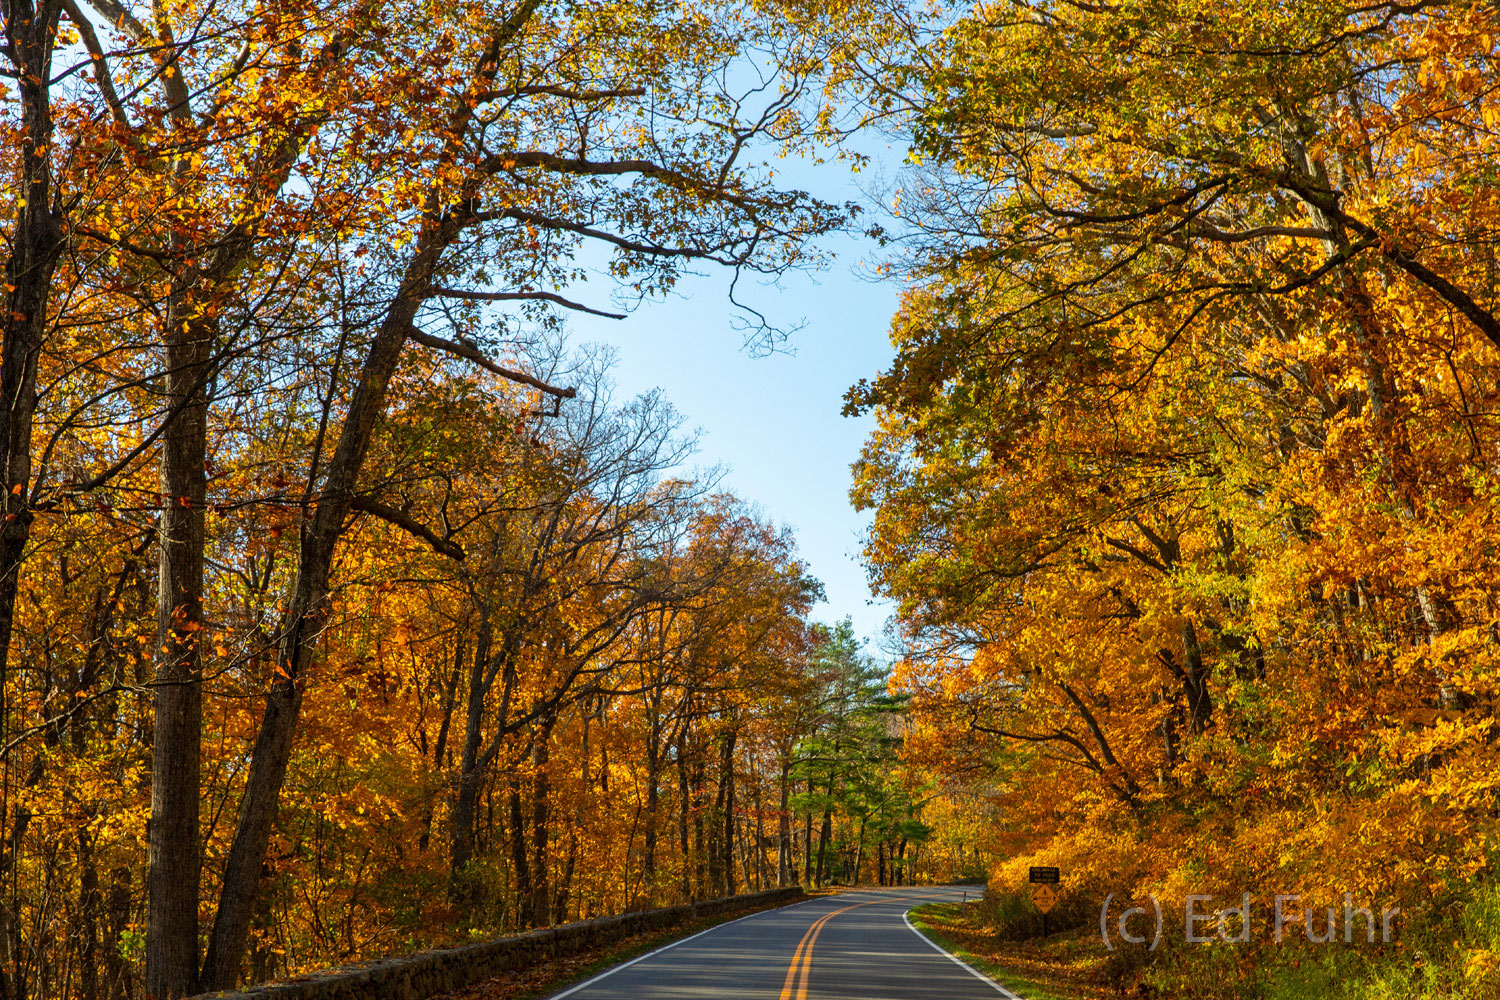 skyline drive, autumn, foliage, photo